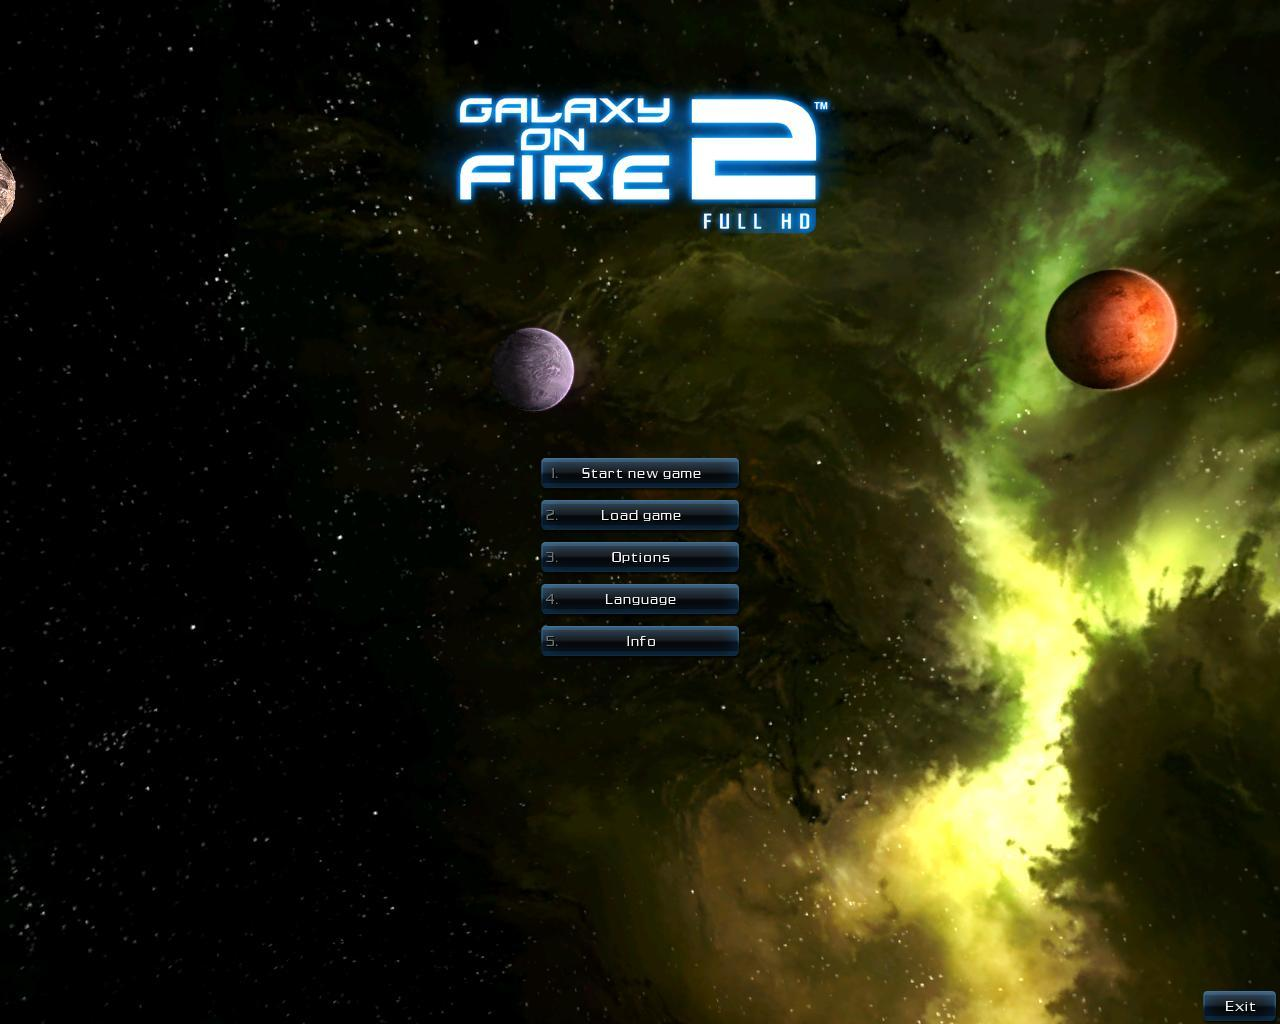 Galaxy on Fire II HD: A Hunka Hunka Burning Love | Space